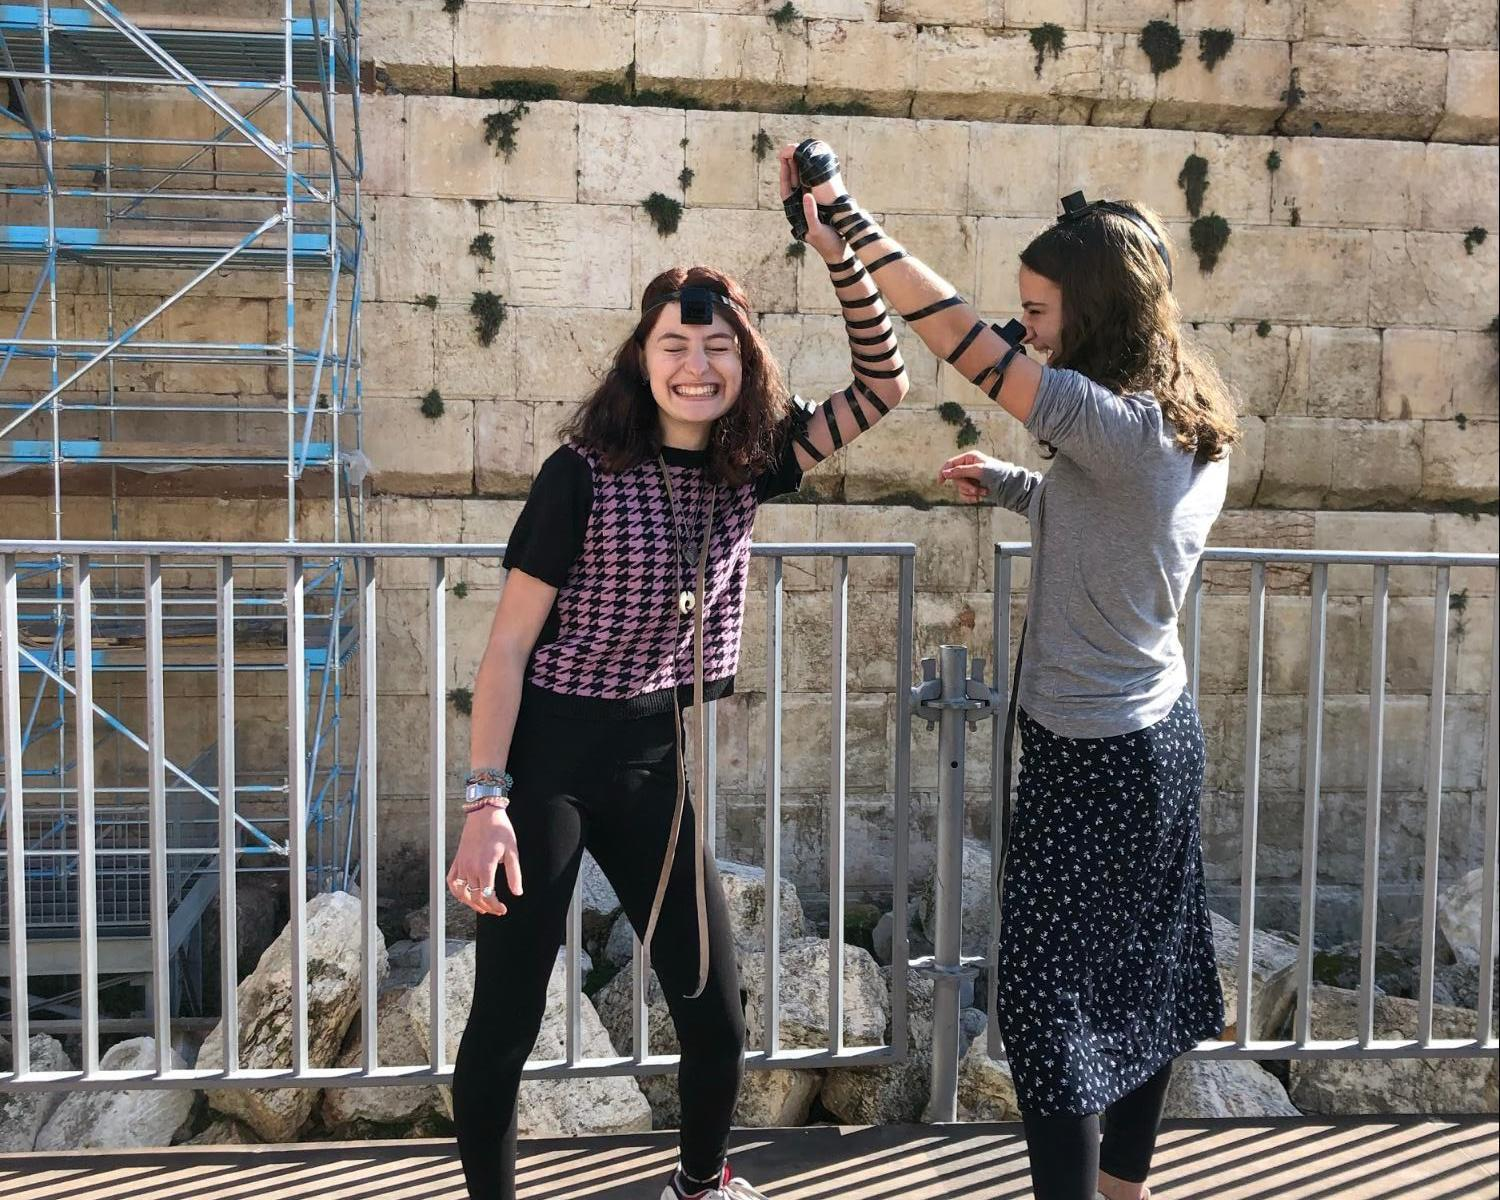 Maya Stutman-Shaw Wearing Tefillin with a Friend at the Western Wall